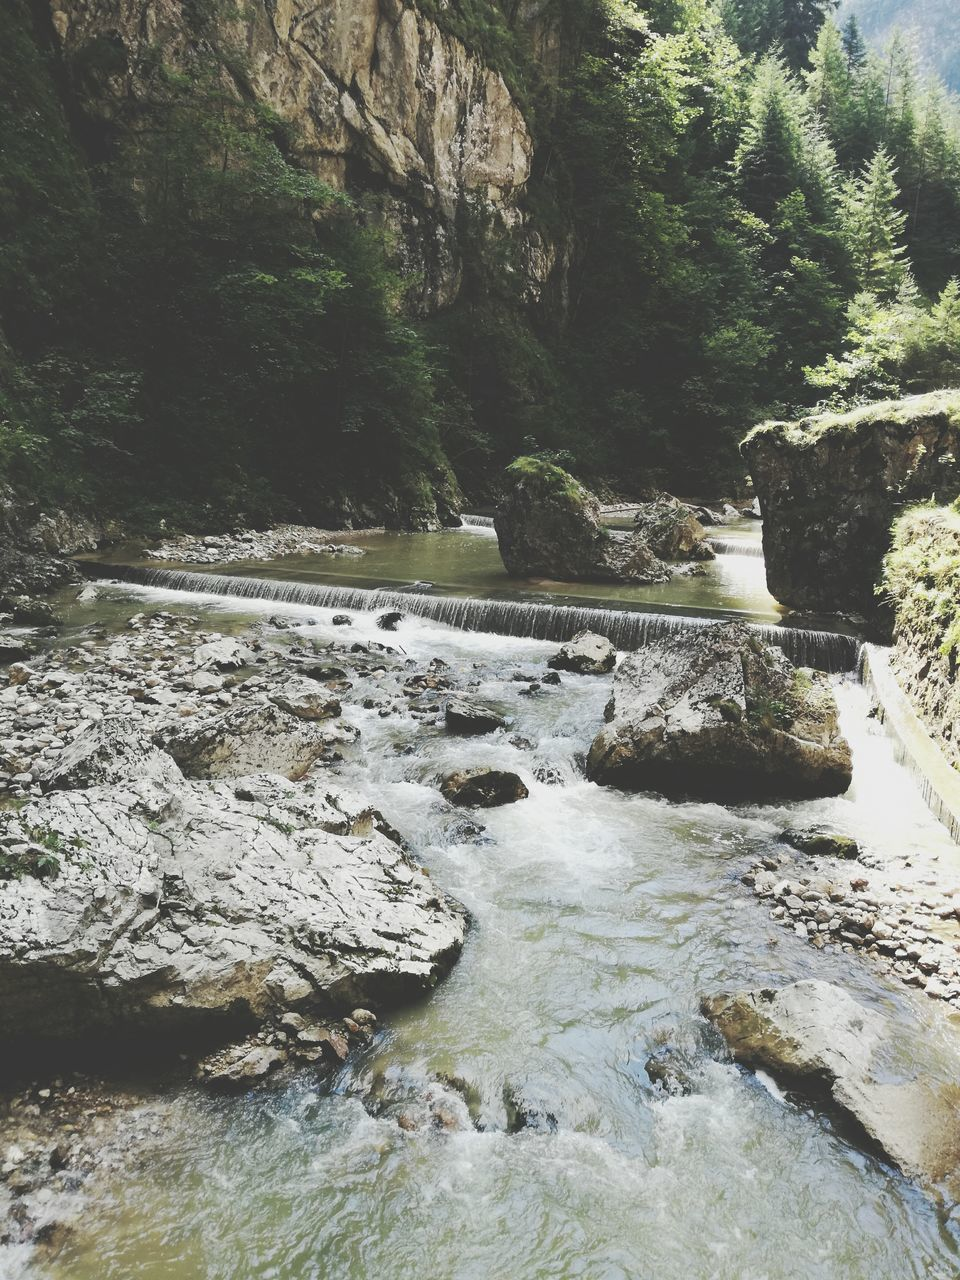 rock - object, nature, rock formation, water, waterfall, tree, forest, river, day, tranquil scene, tranquility, beauty in nature, no people, scenics, outdoors